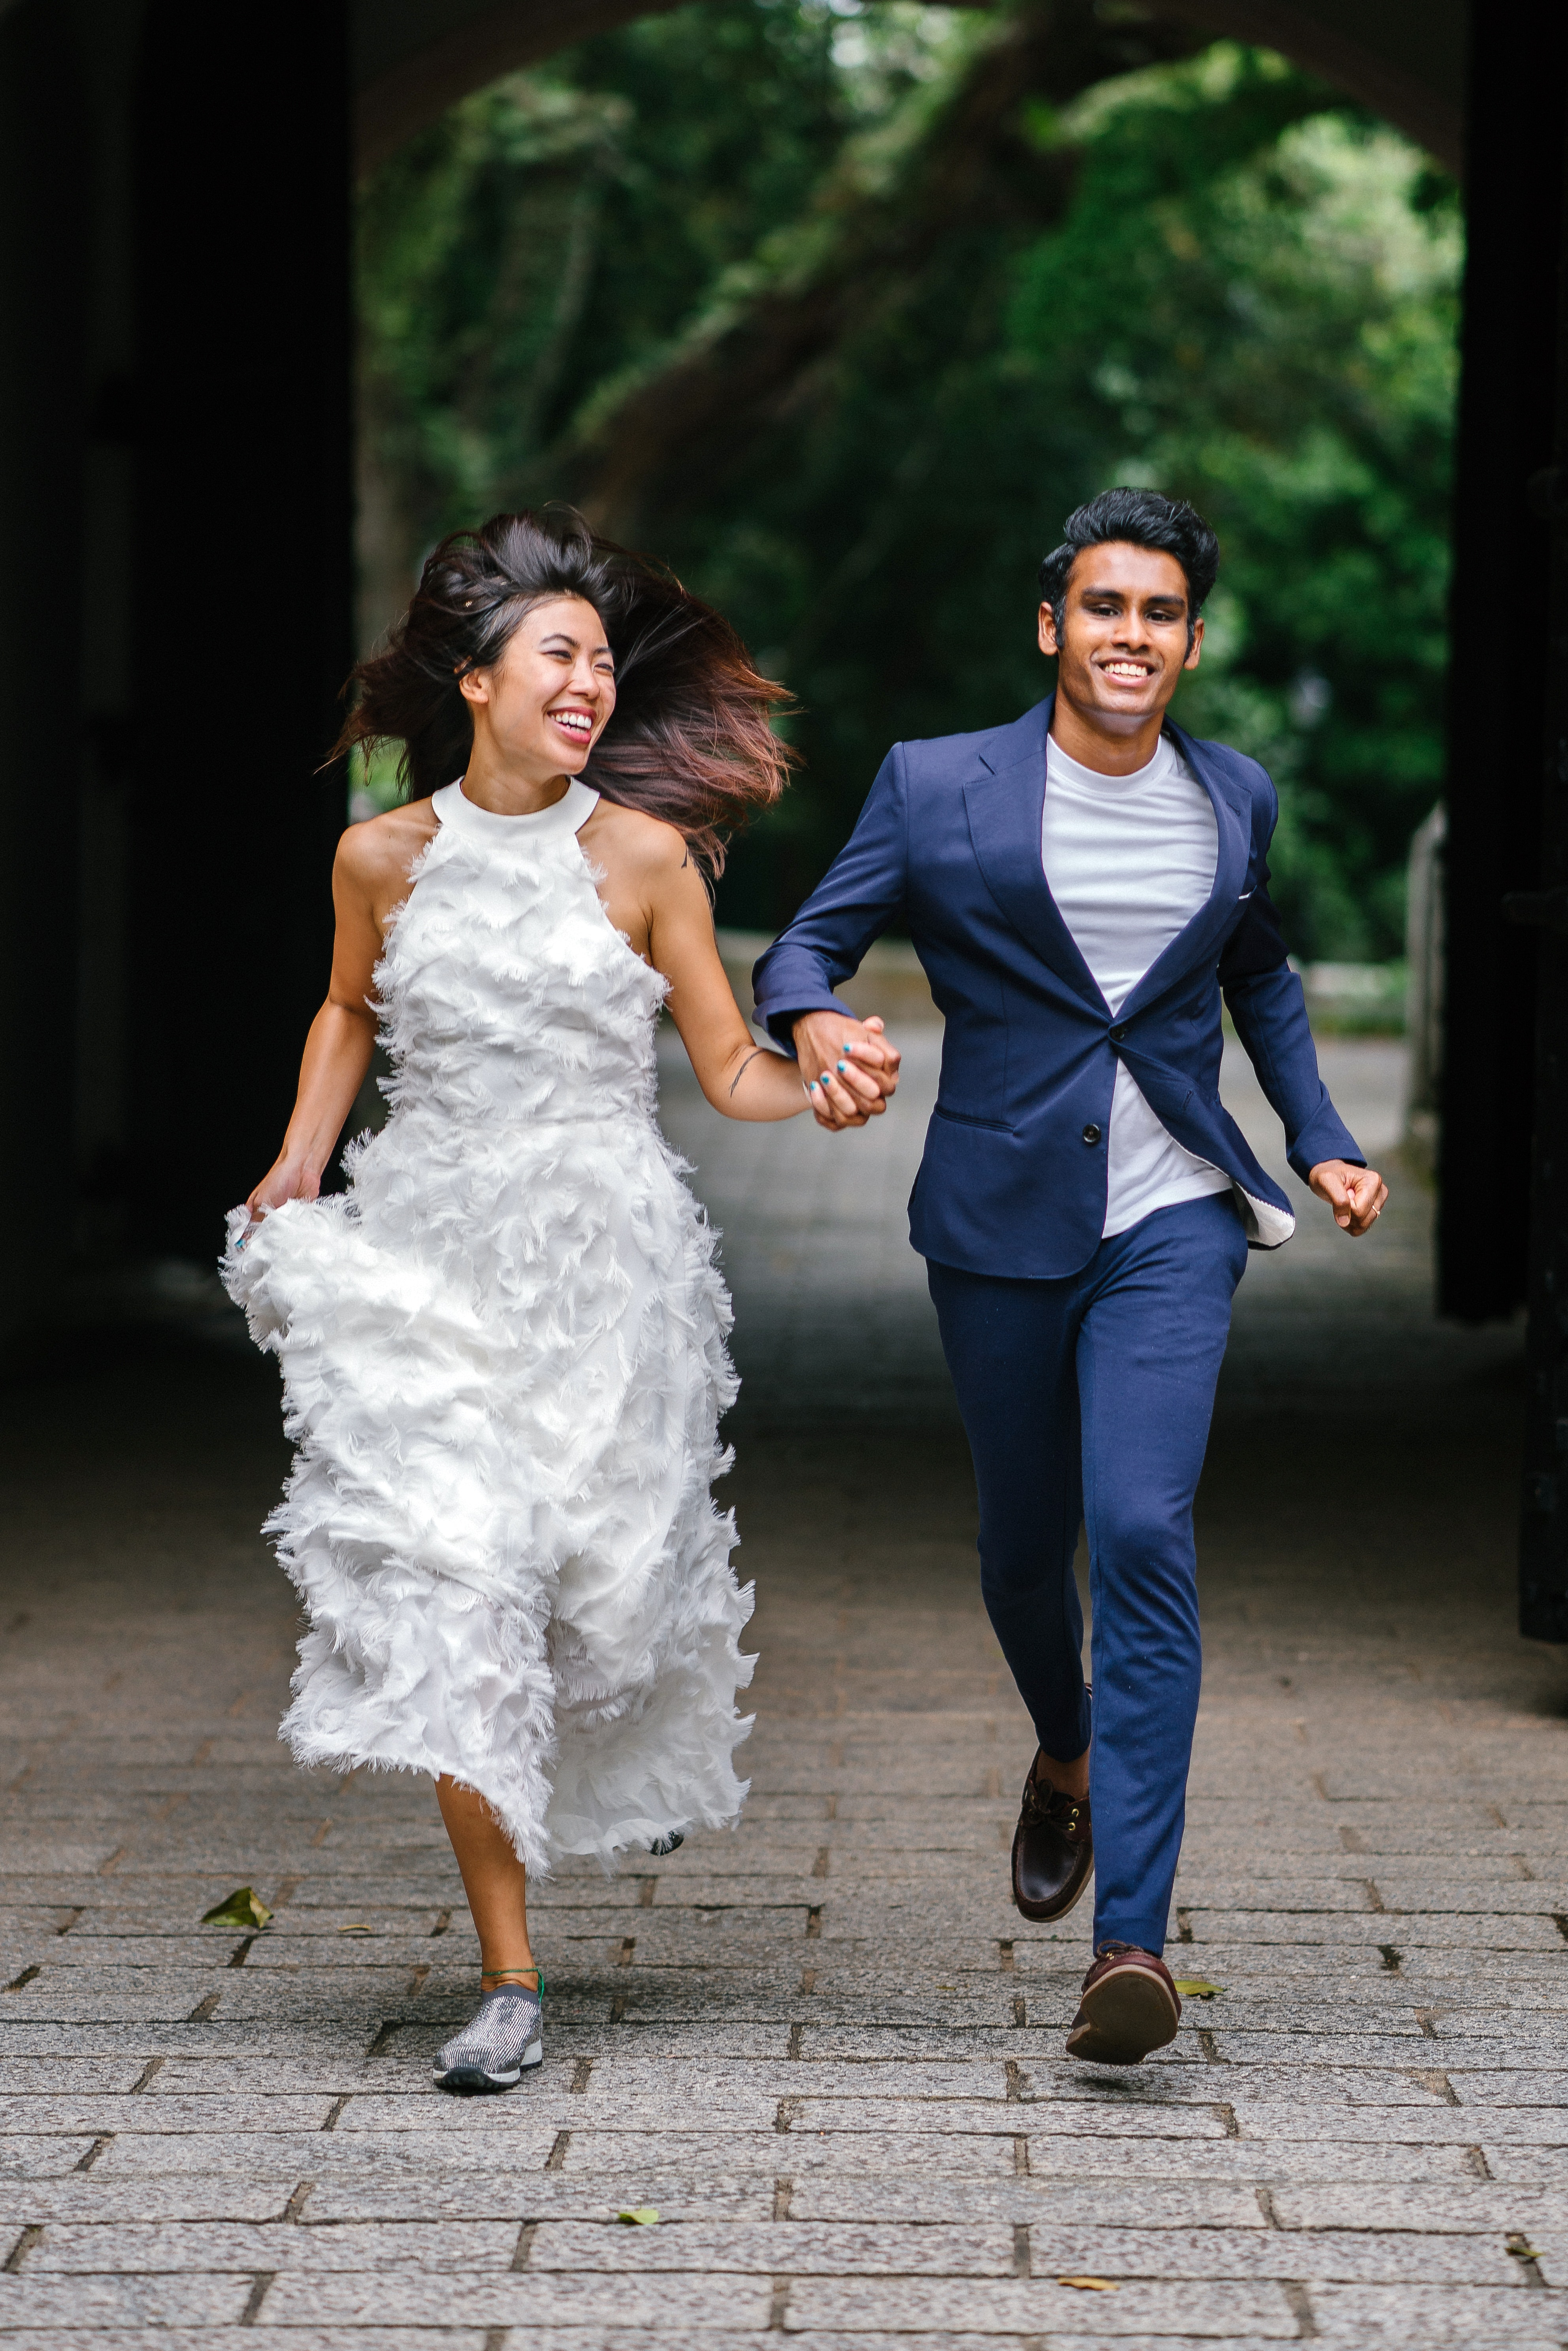 Happy bride in wedding gown and groom in blue suit running while holding hands on their wedding day.